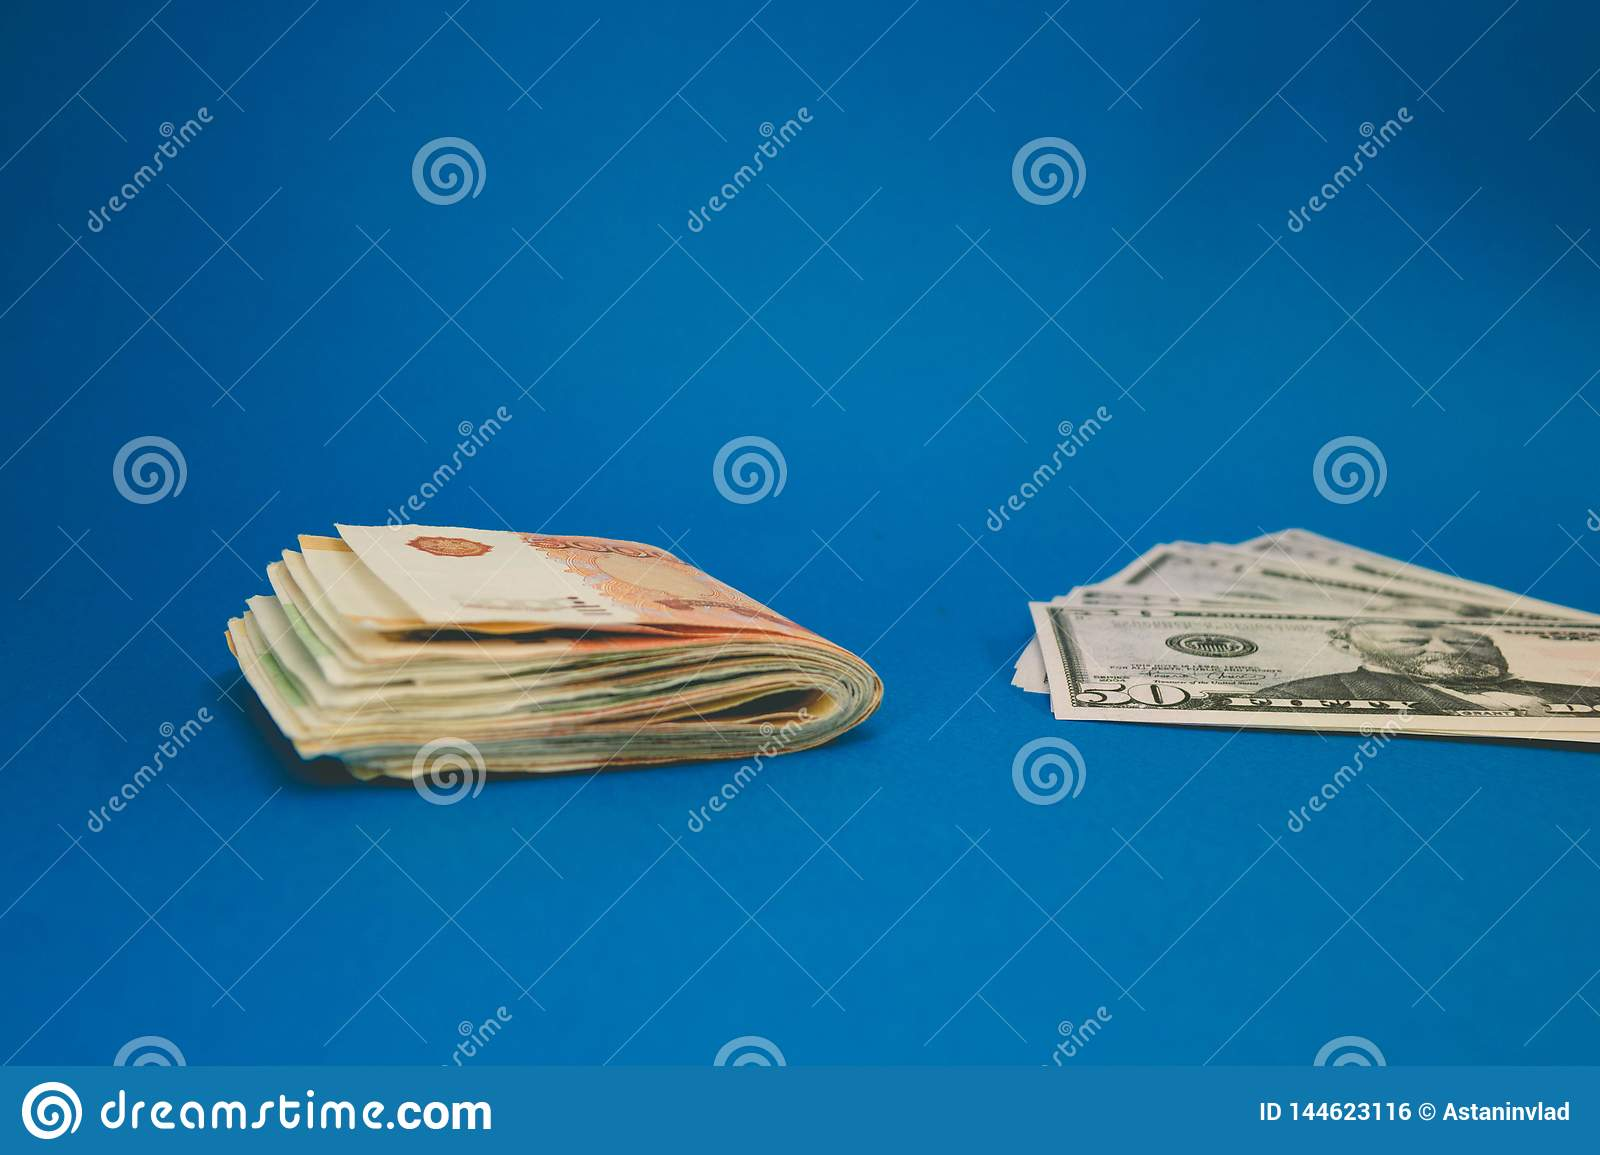 Ruble and dollar. The struggle of the ruble and the dollar in the modern financial world. Currency Ratio, Concept